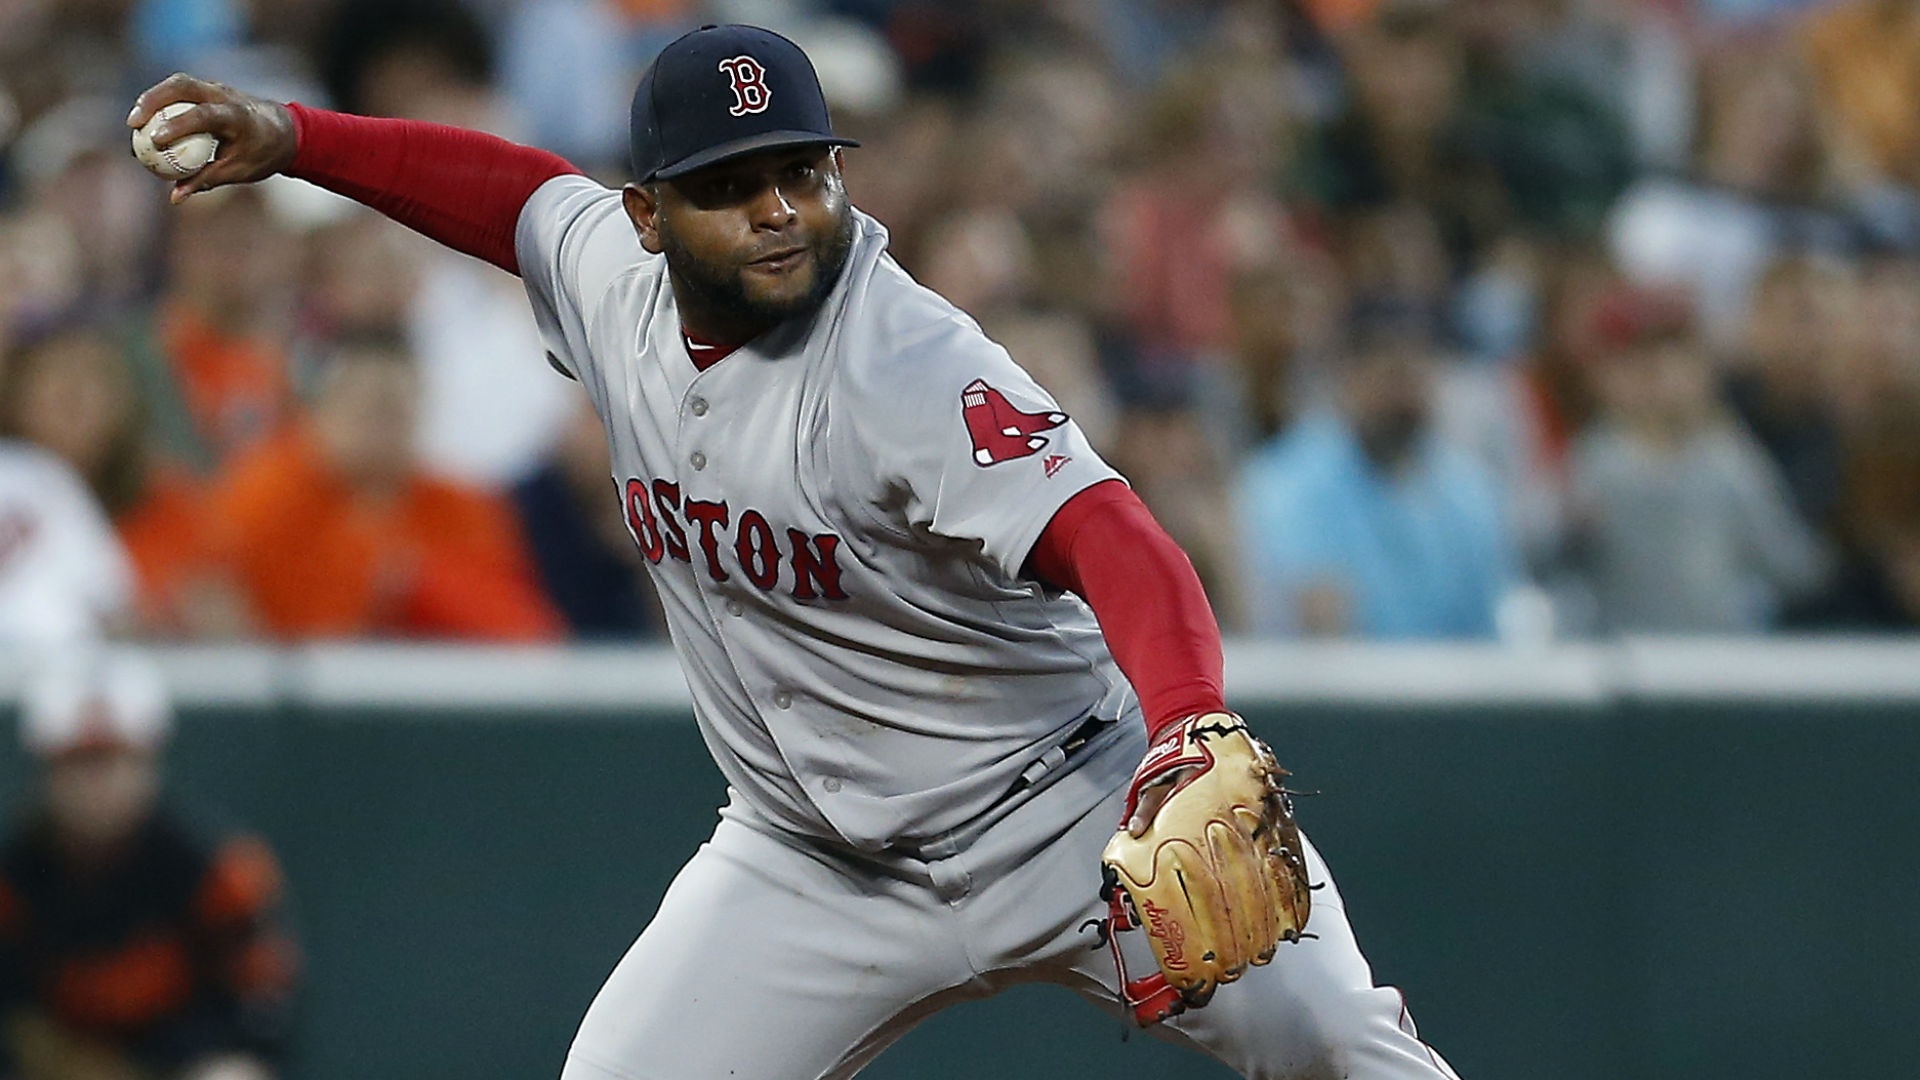 Red Sox 3B heads to DL with knee sprain